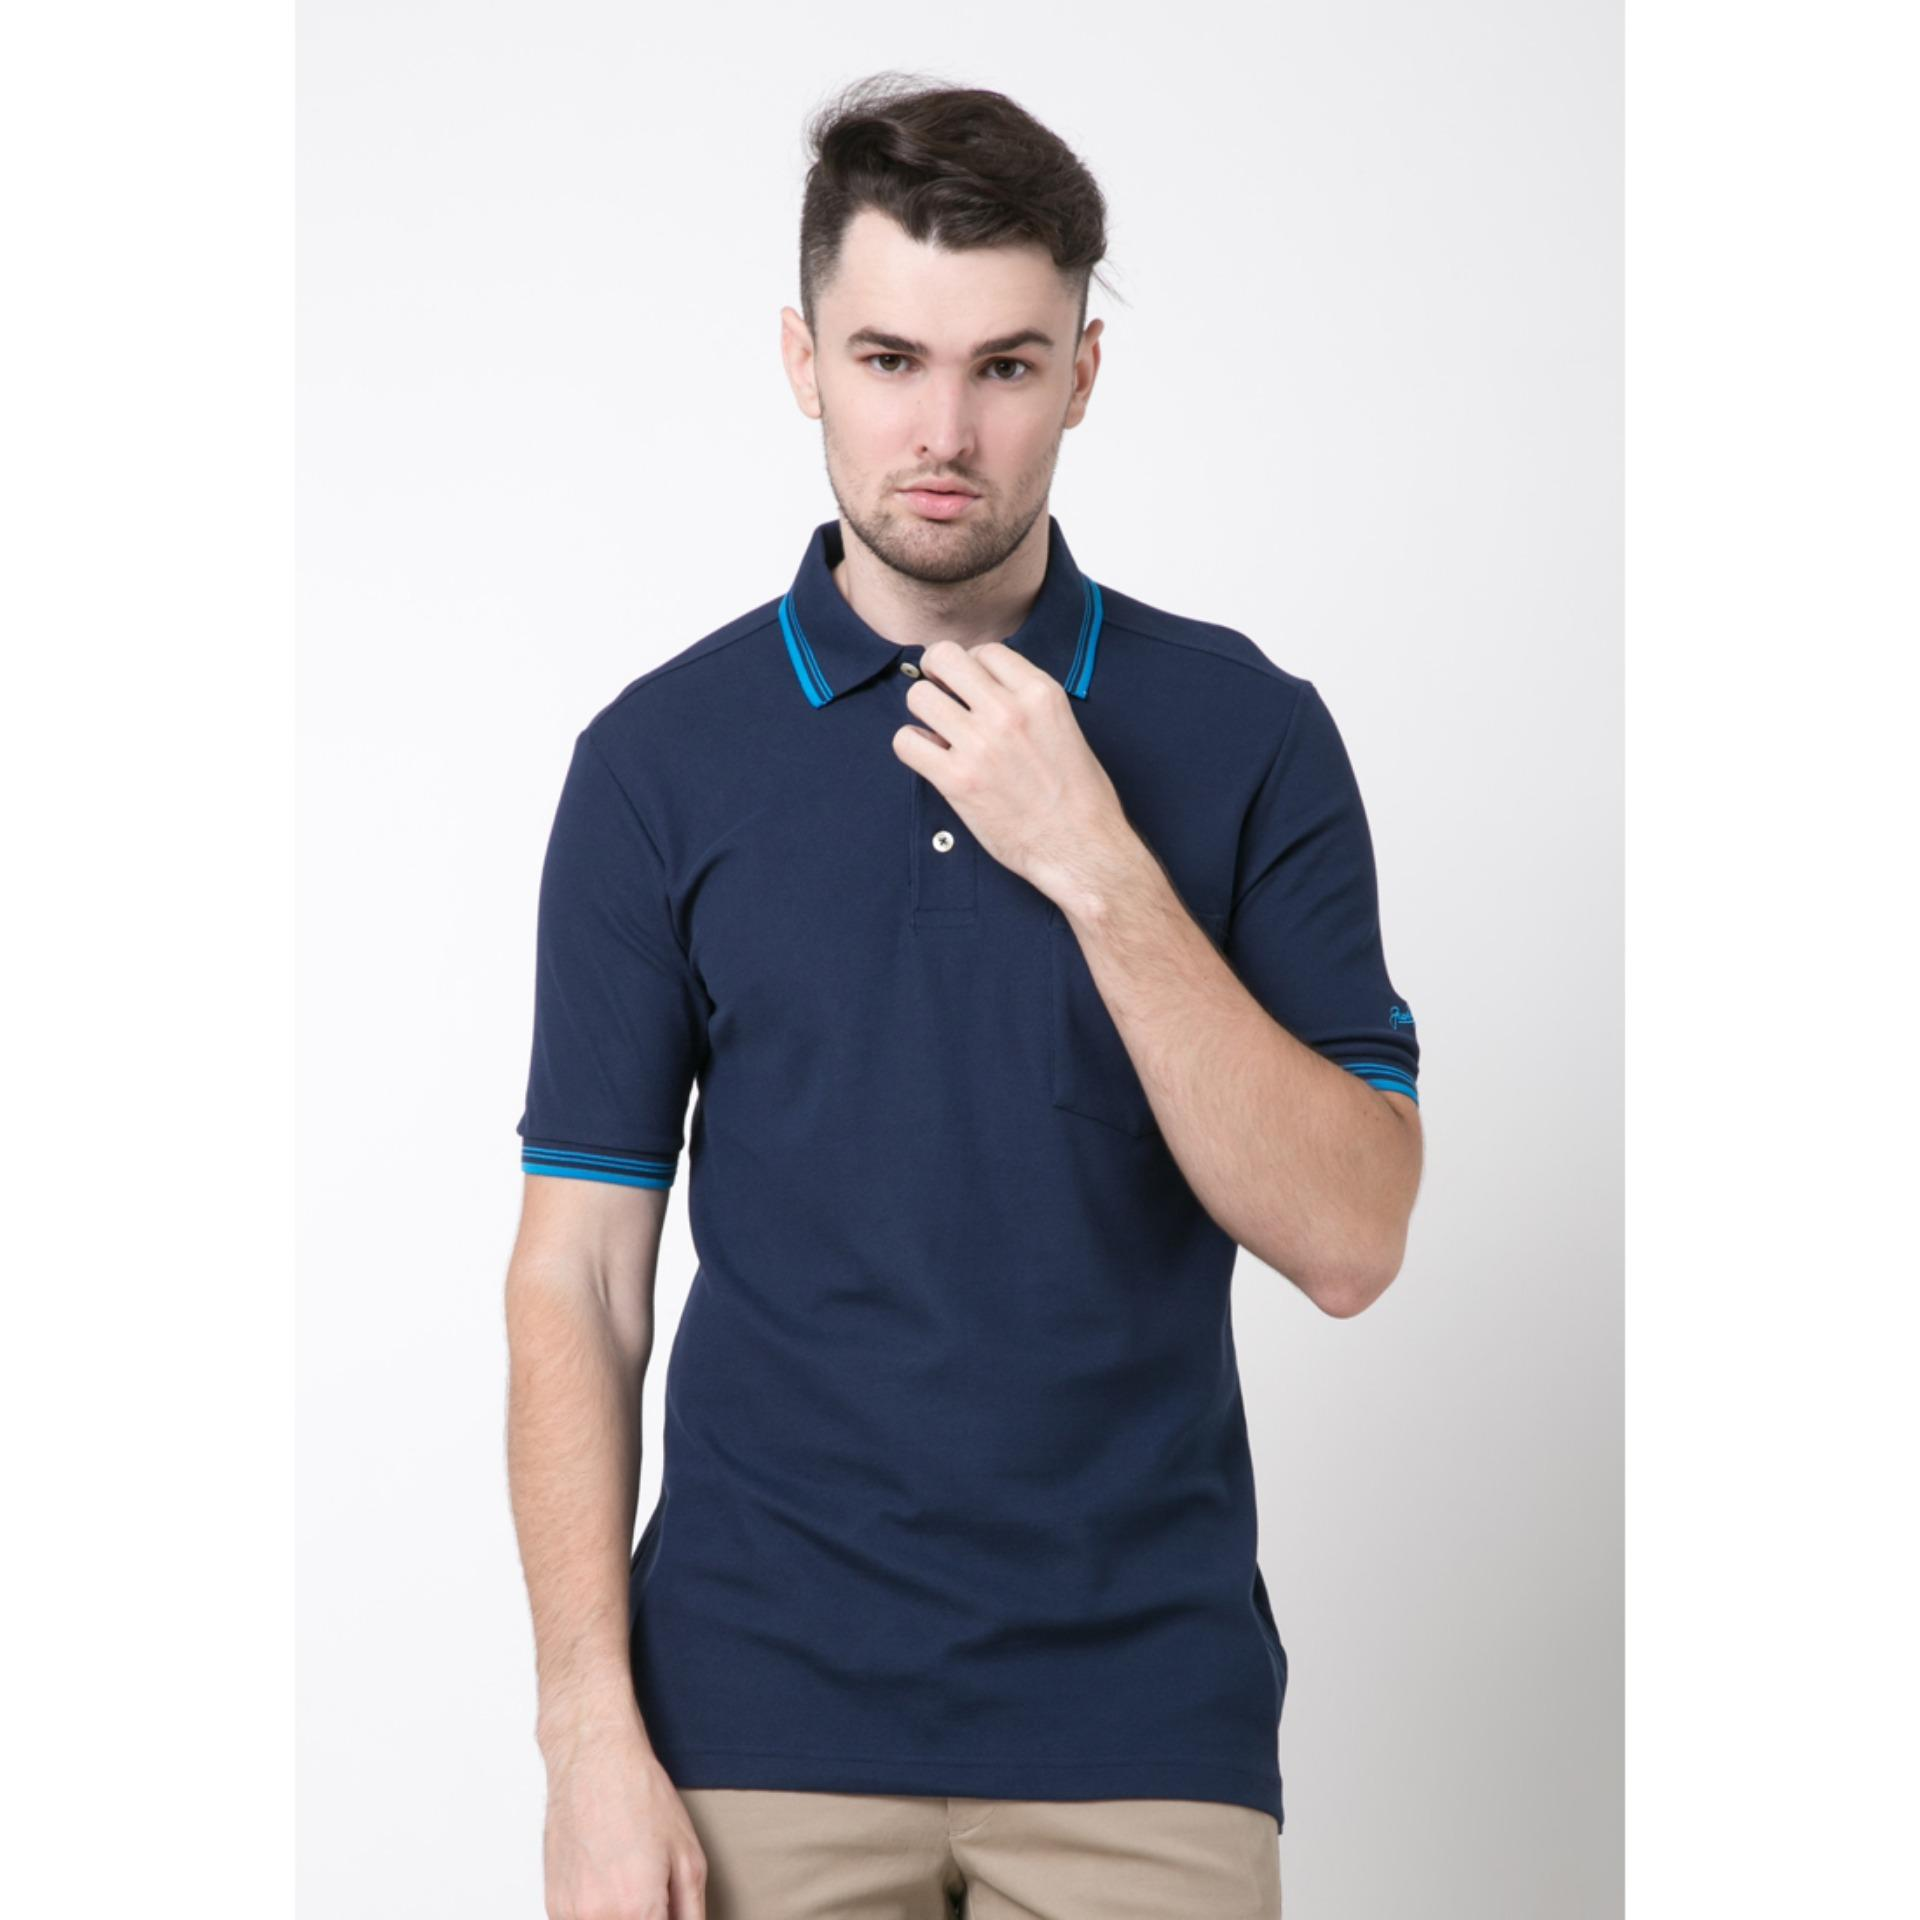 Harga Jack Nicklaus Universal 3 Navy Polo Shirt Original